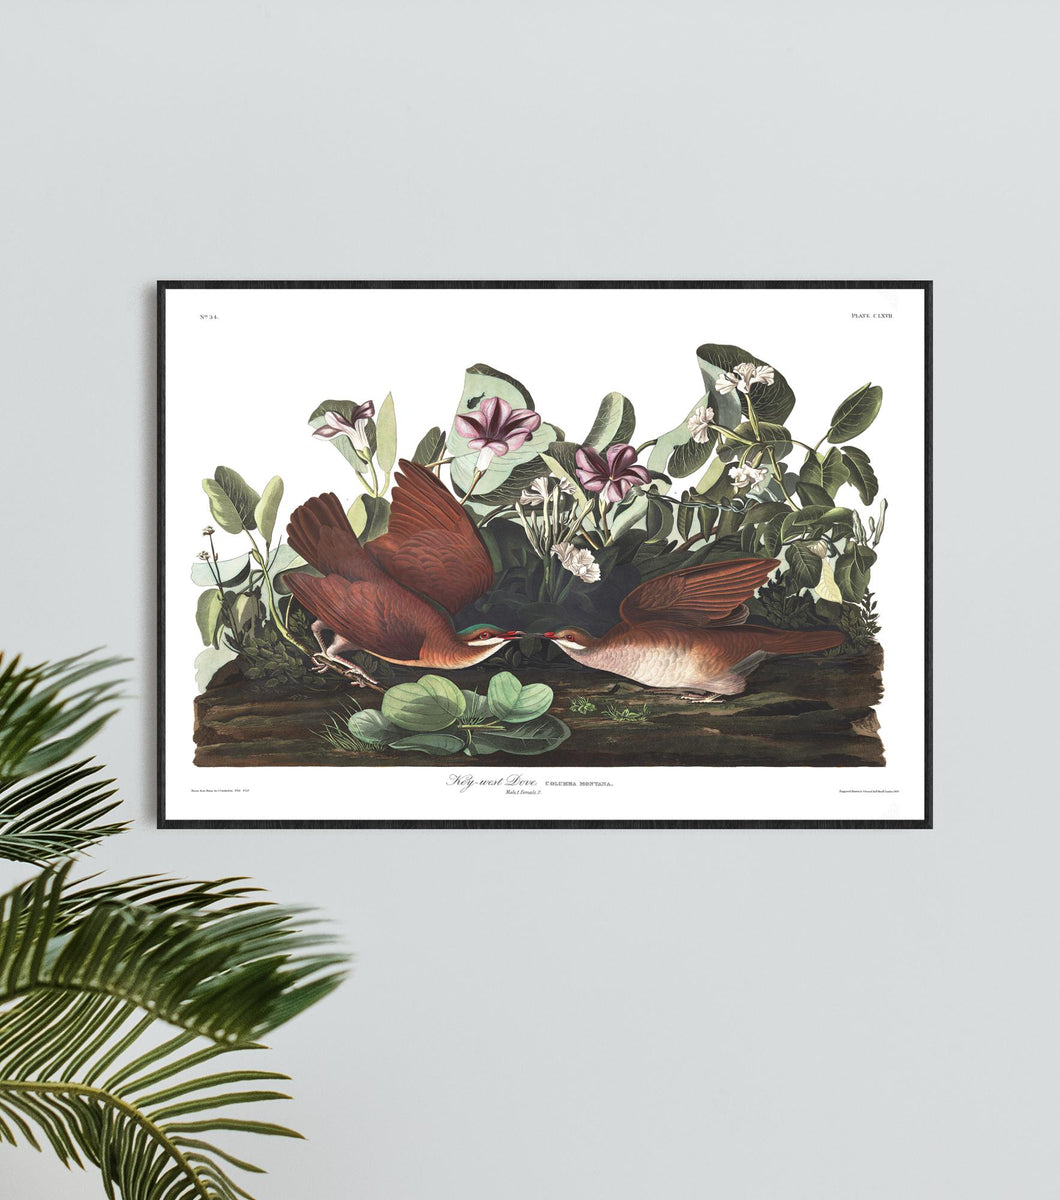 Key-West Dove Print by John Audubon